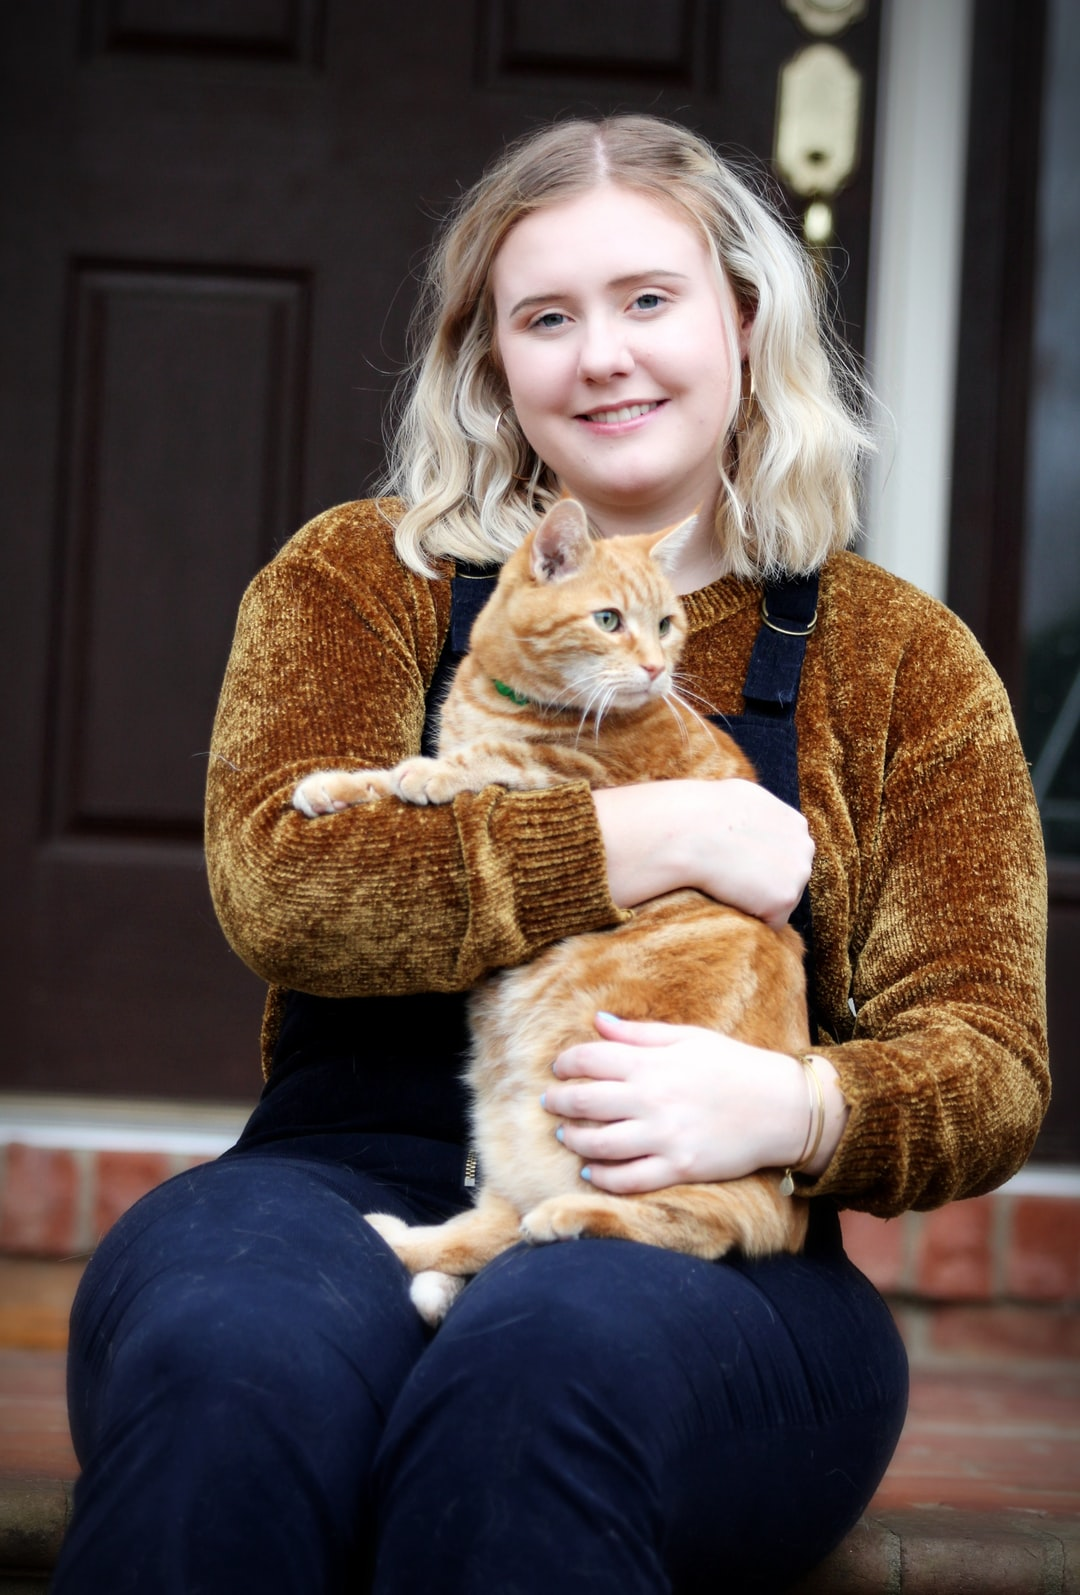 A girl holds a cat